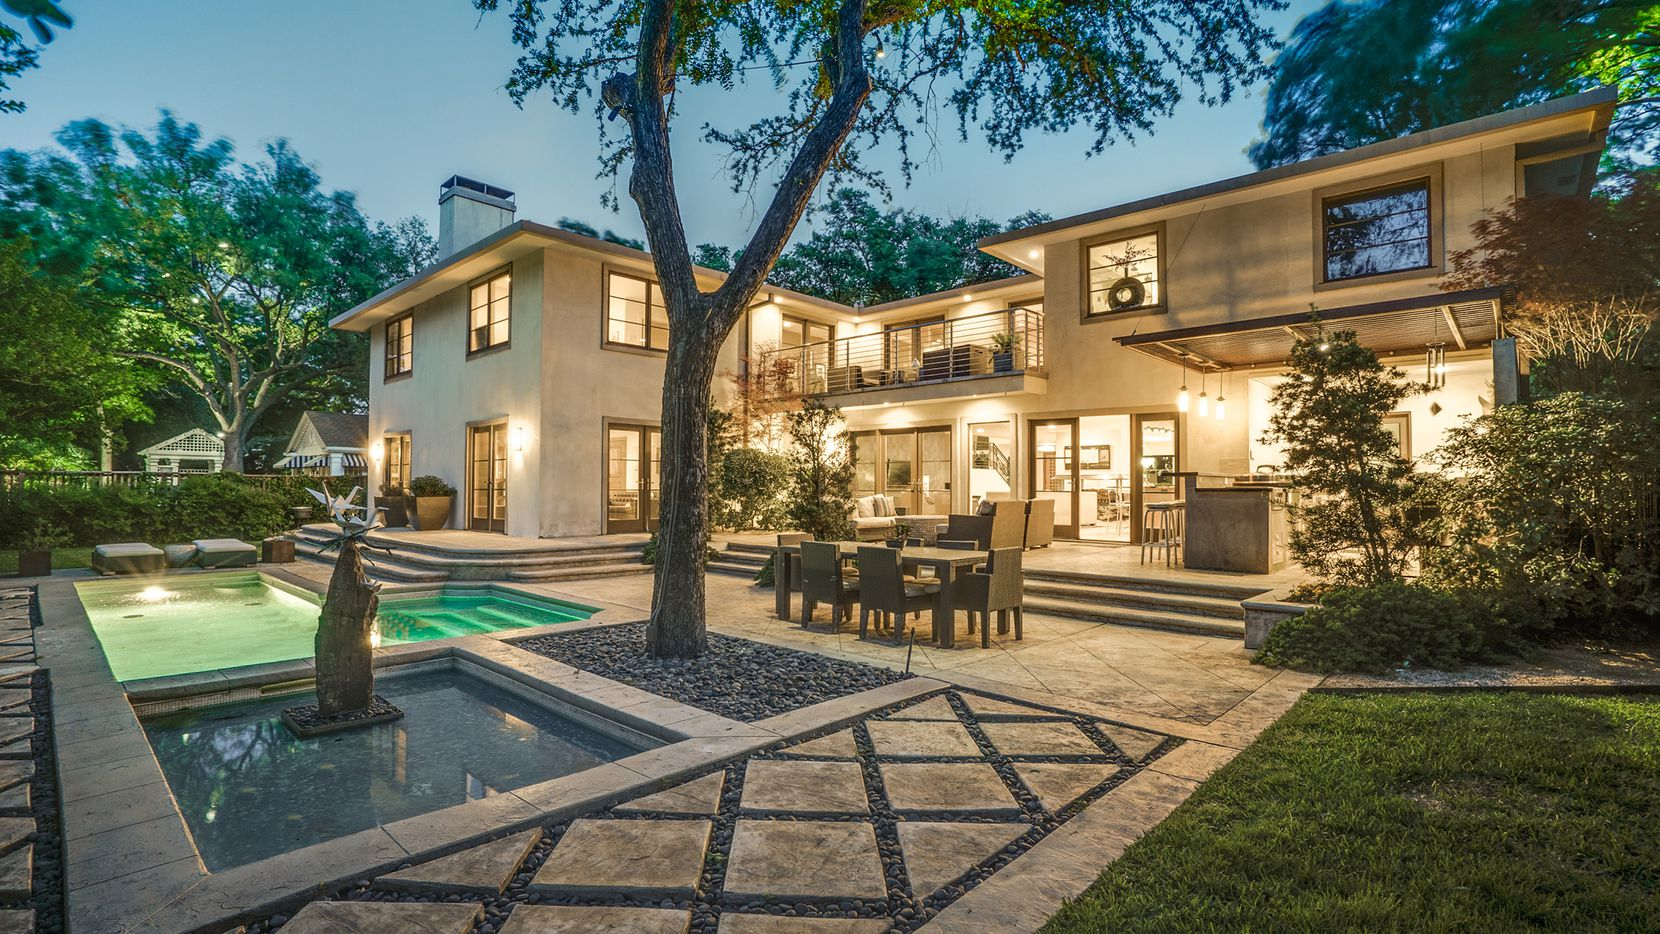 The recently updated home at 5539 Montrose Drive has a California-style pool with greenbelt views.